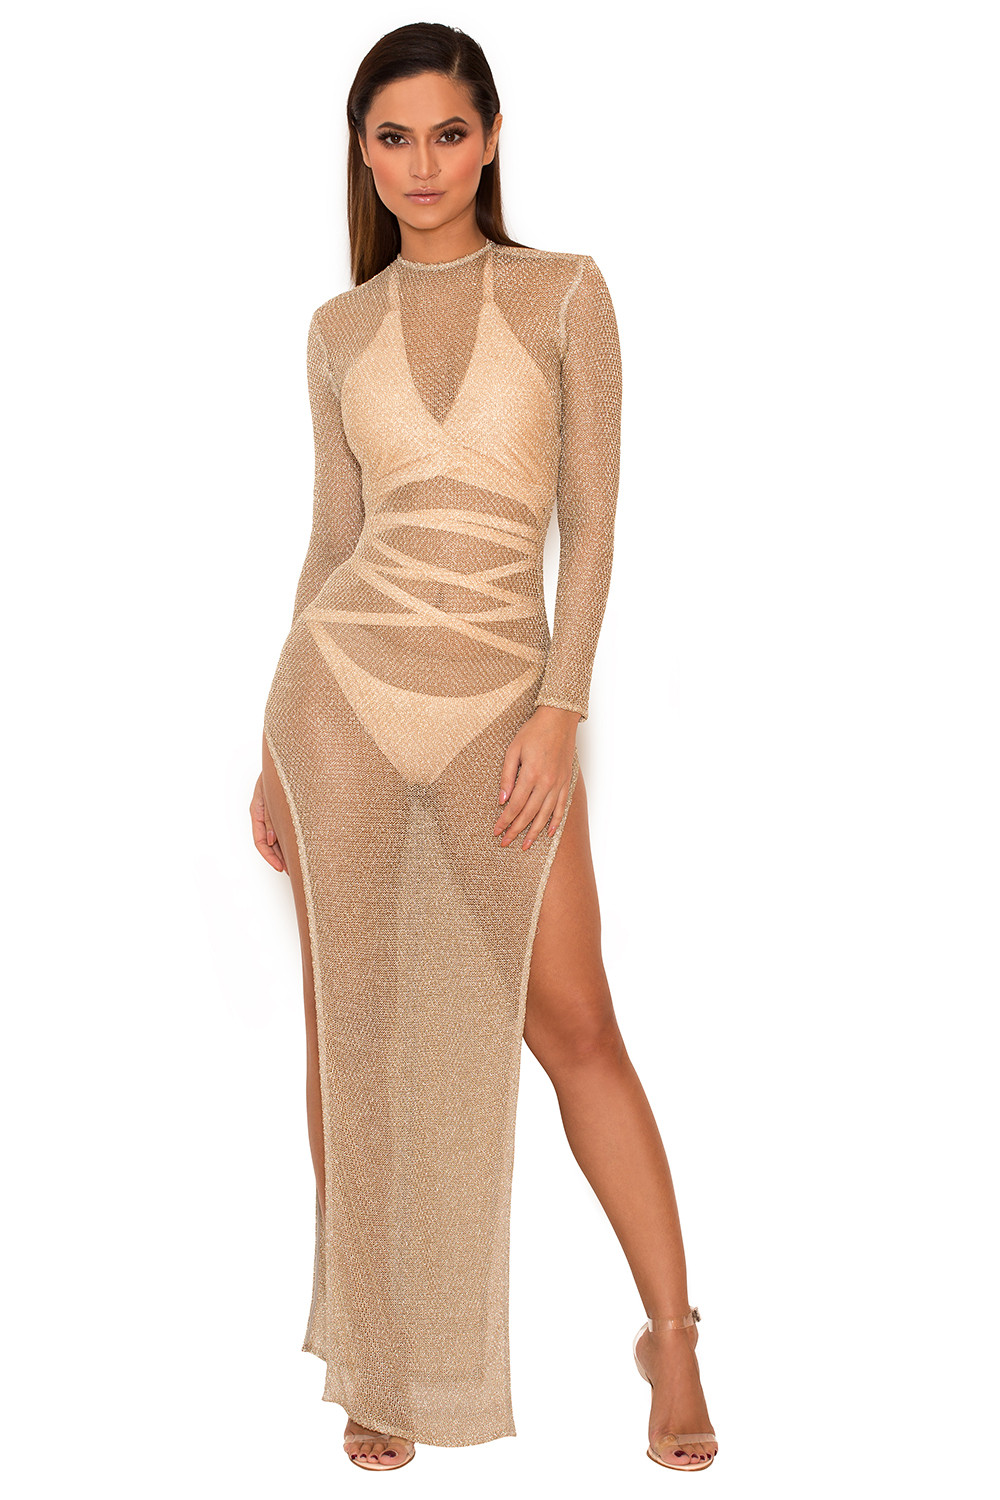 Joan Calabrese Glitter Sheer Dress w/ Embellished Waist, Size Details Joan Calabrese dress with pleated sheer top with full tulle skirt. Wide waistband with rhinestone, crystal, and beaded embellishment.